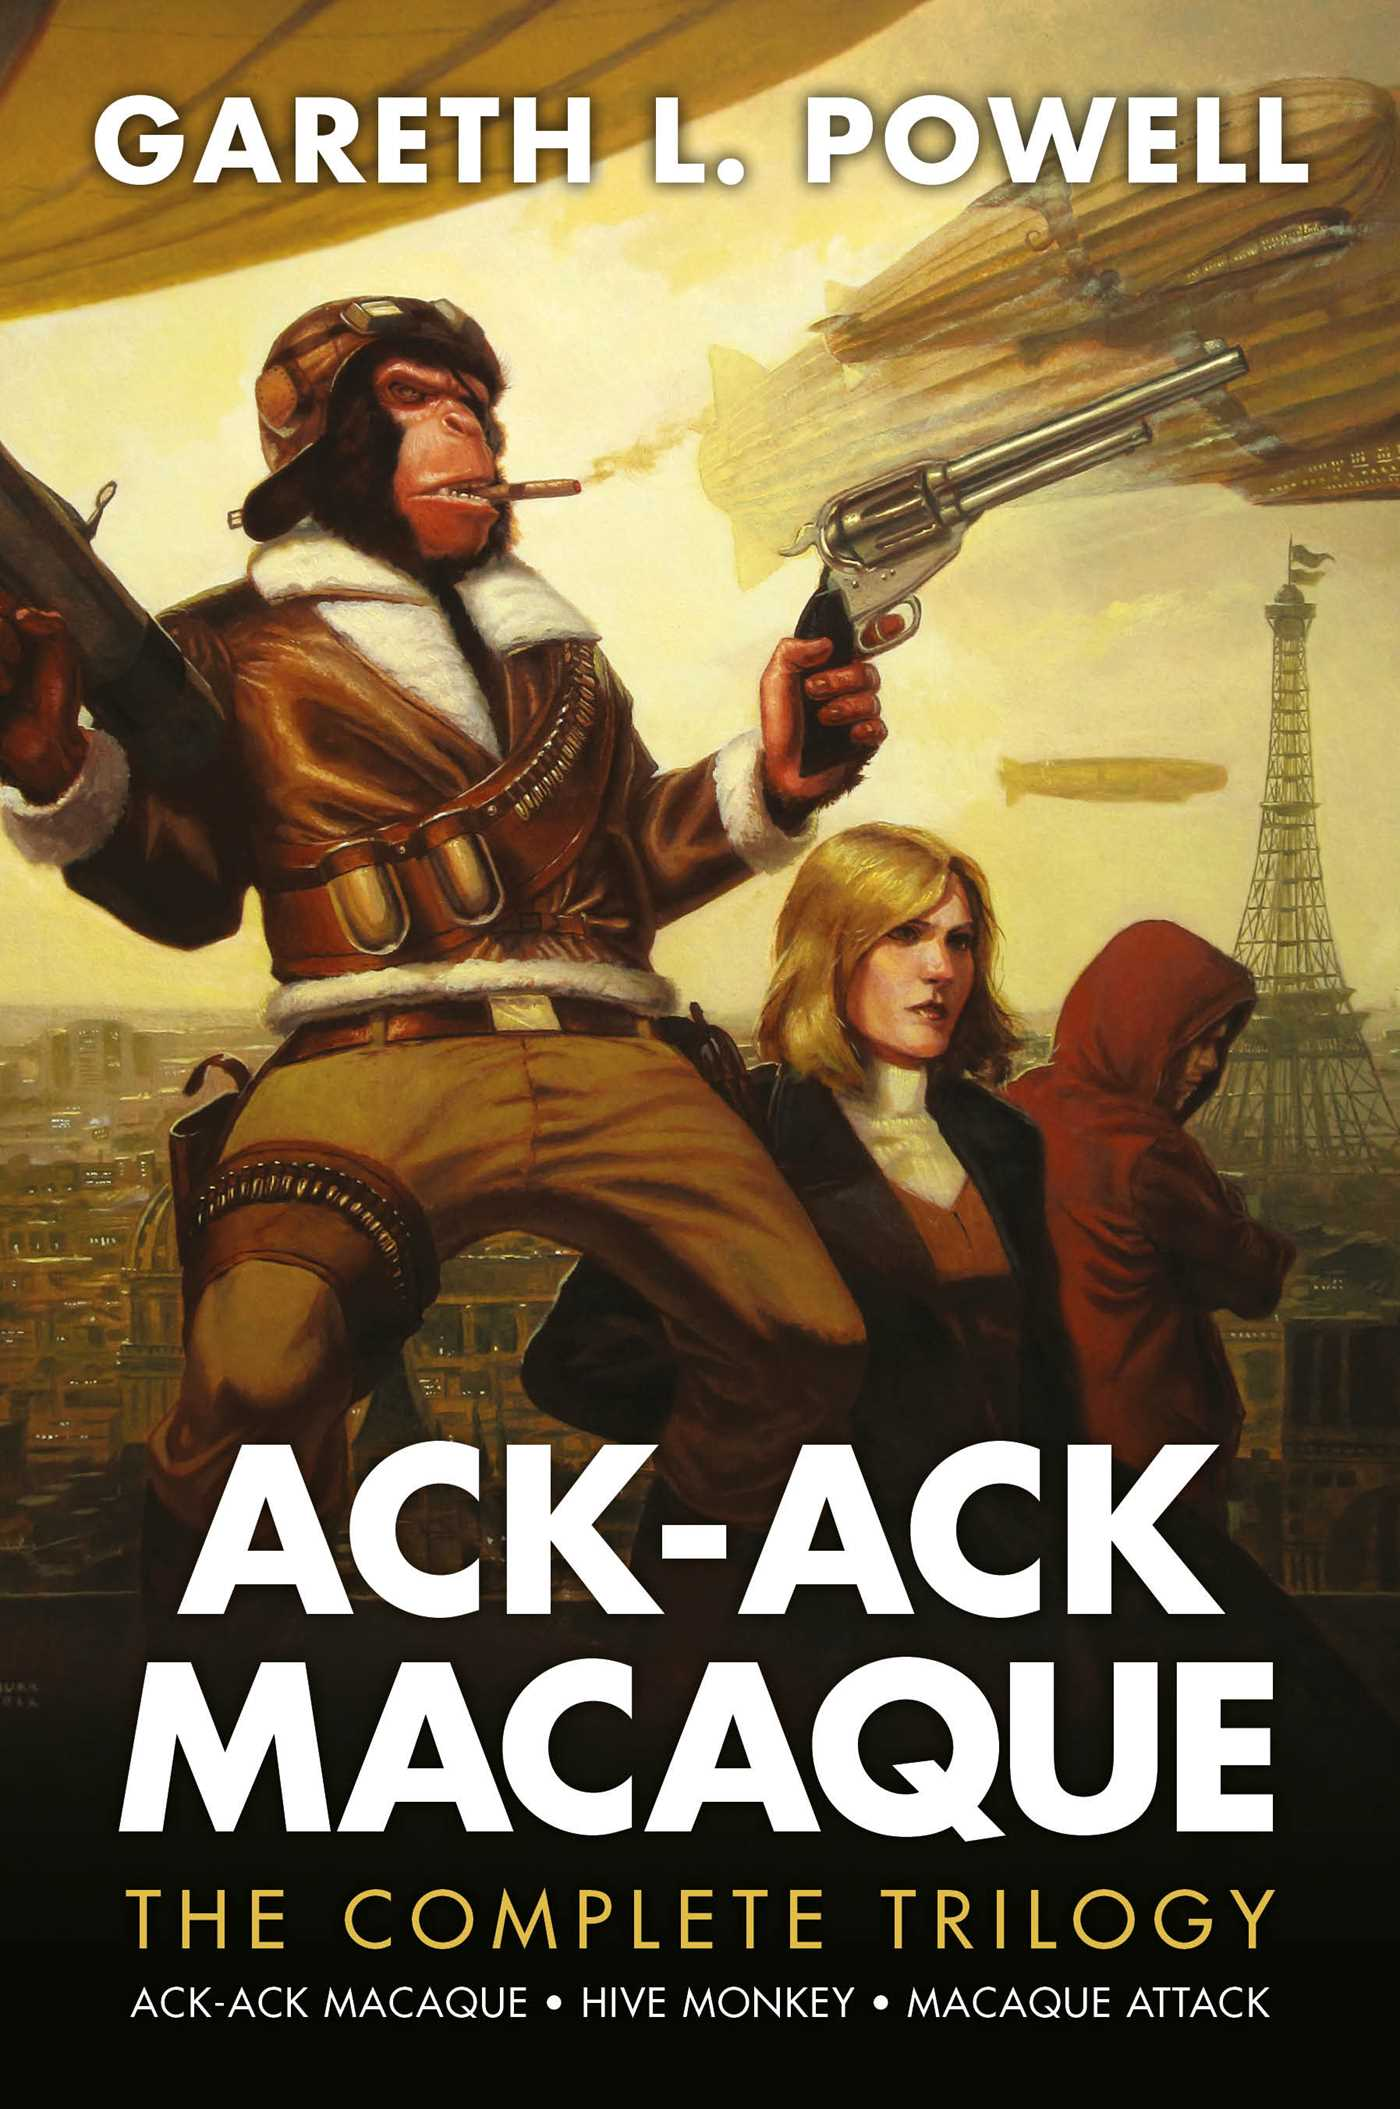 The complete ack ack macaque trilogy 9781781086056 hr